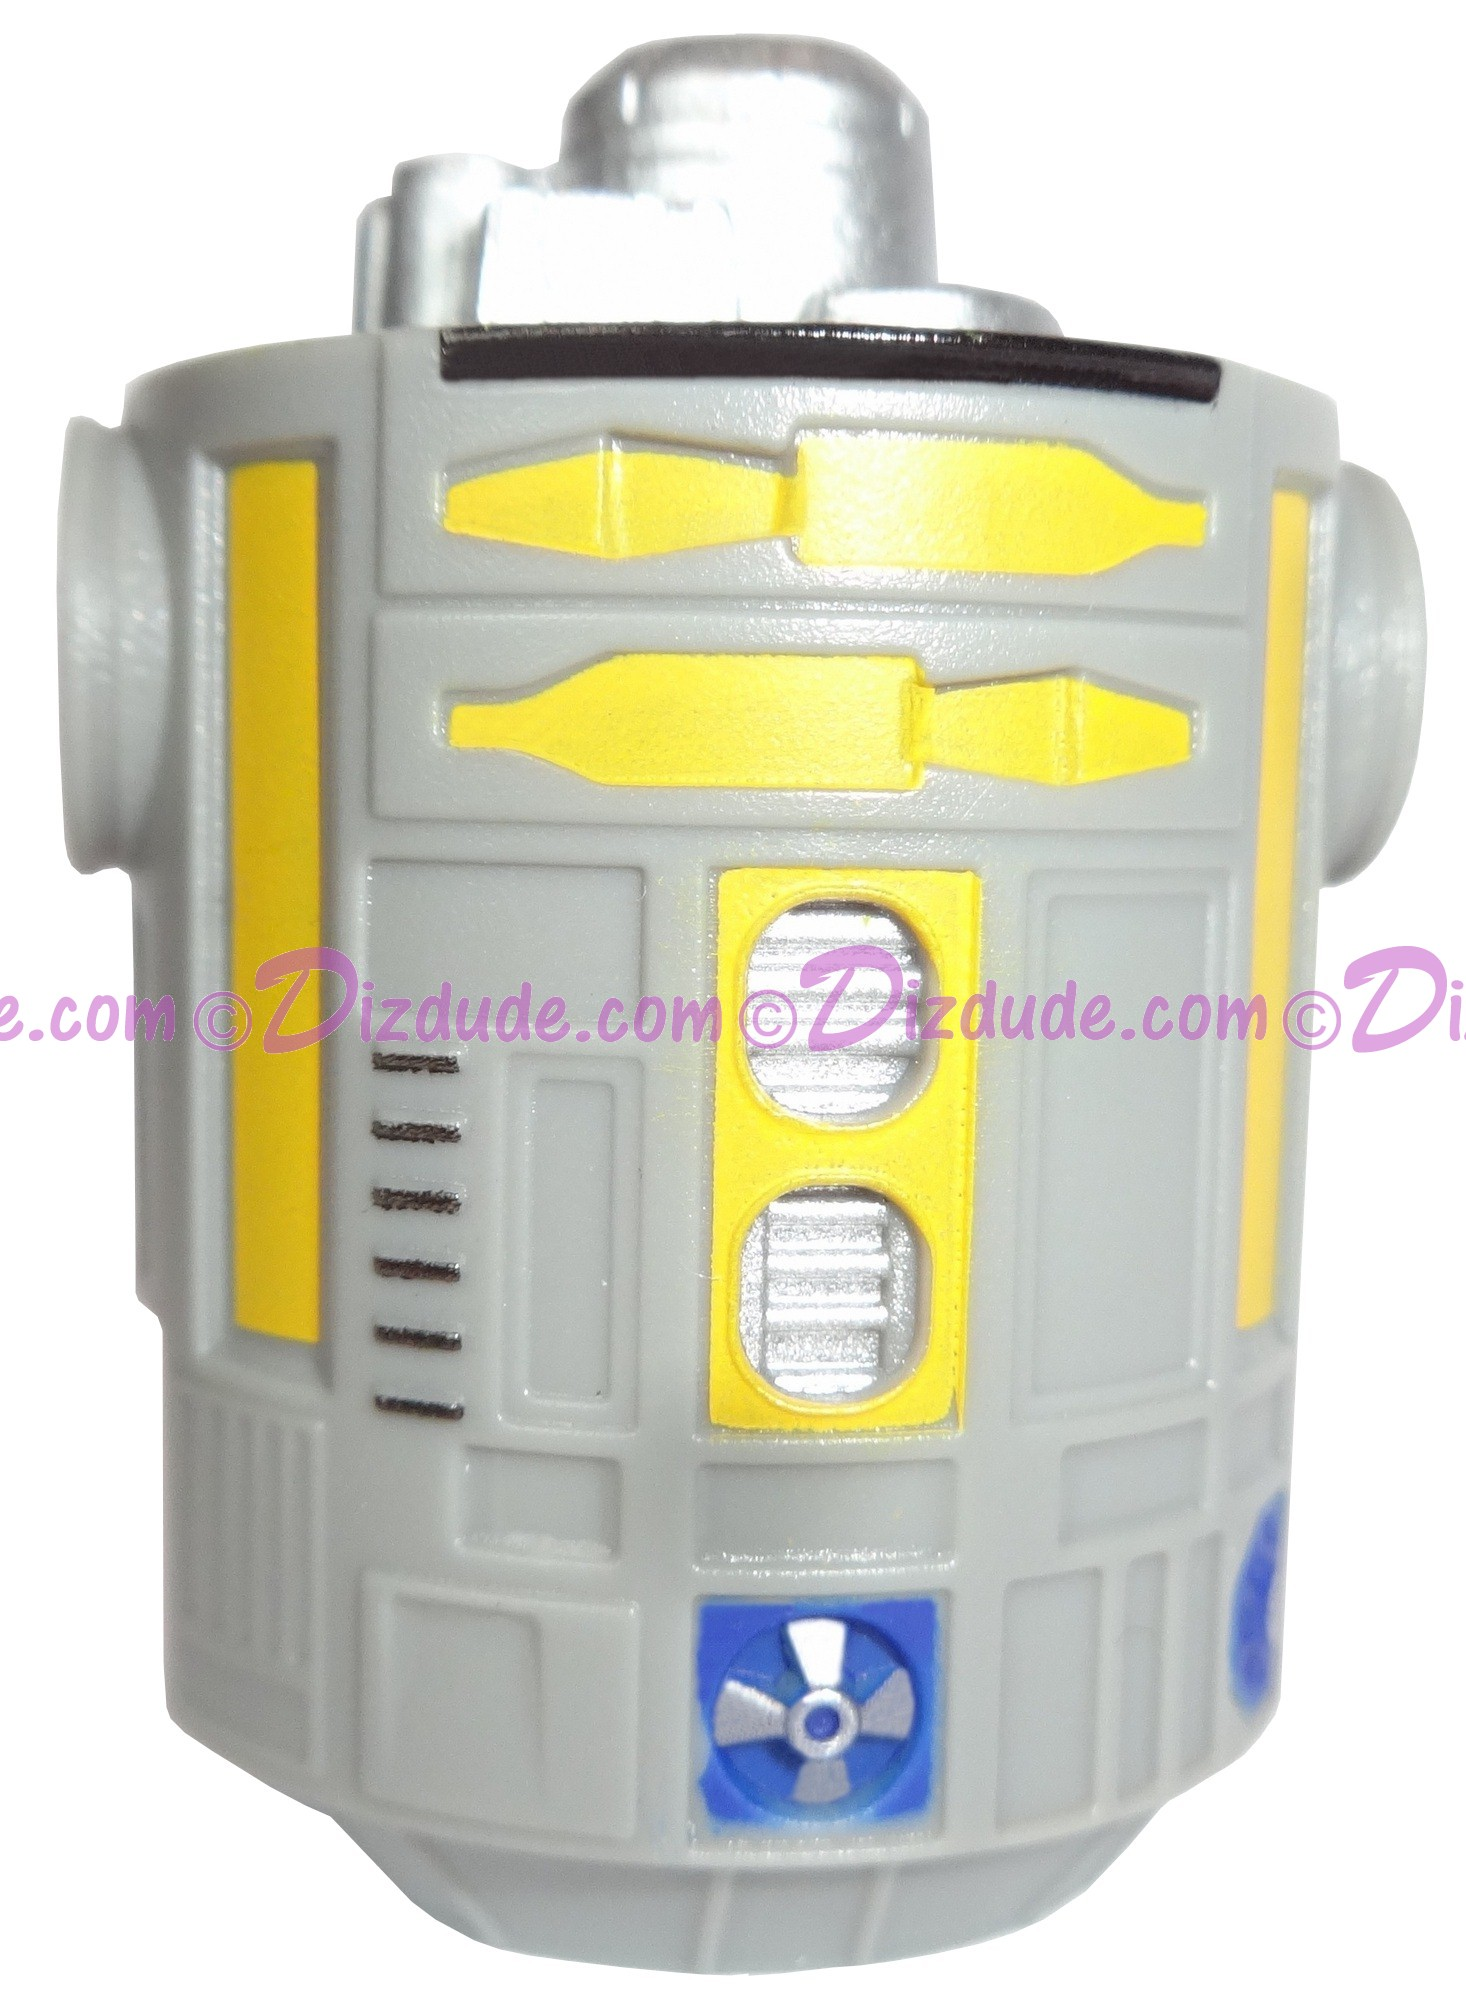 Gray & Yellow Astromech Droid Body ~ Series 2 from Disney Star Wars Build-A-Droid Factory © Dizdude.com